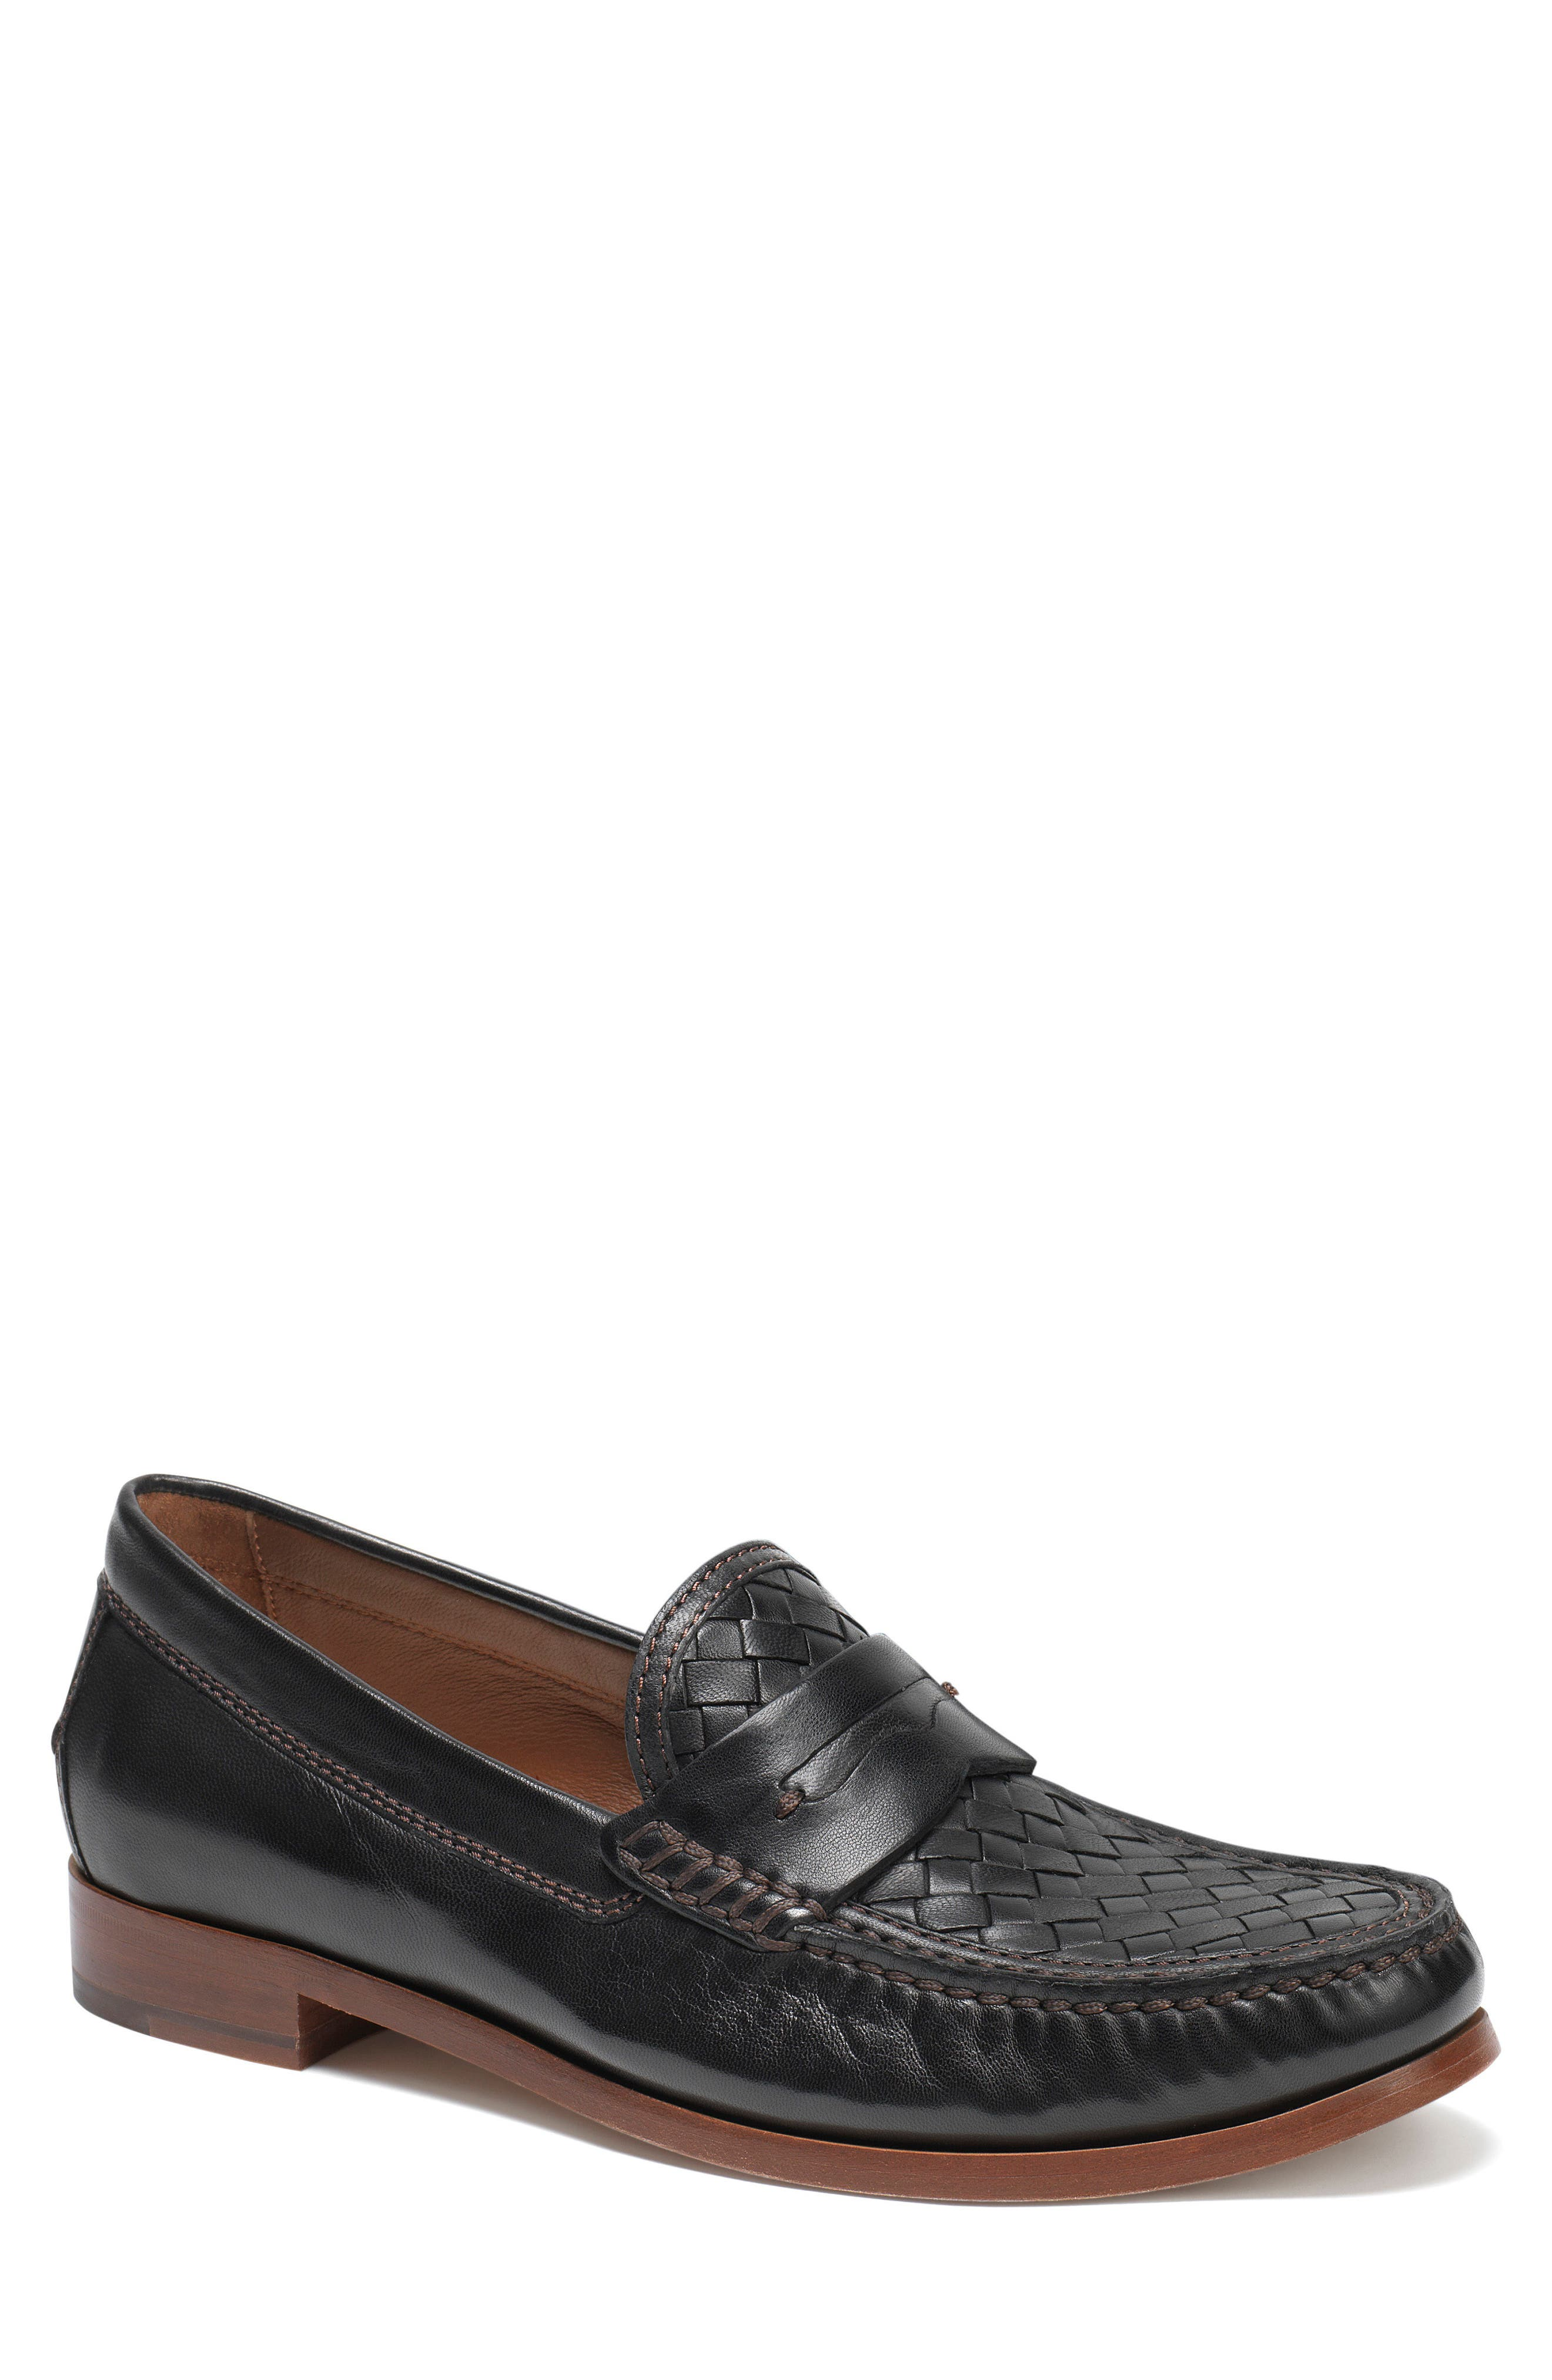 Slade Water Resistant Woven Penny Loafer,                         Main,                         color, Black Leather